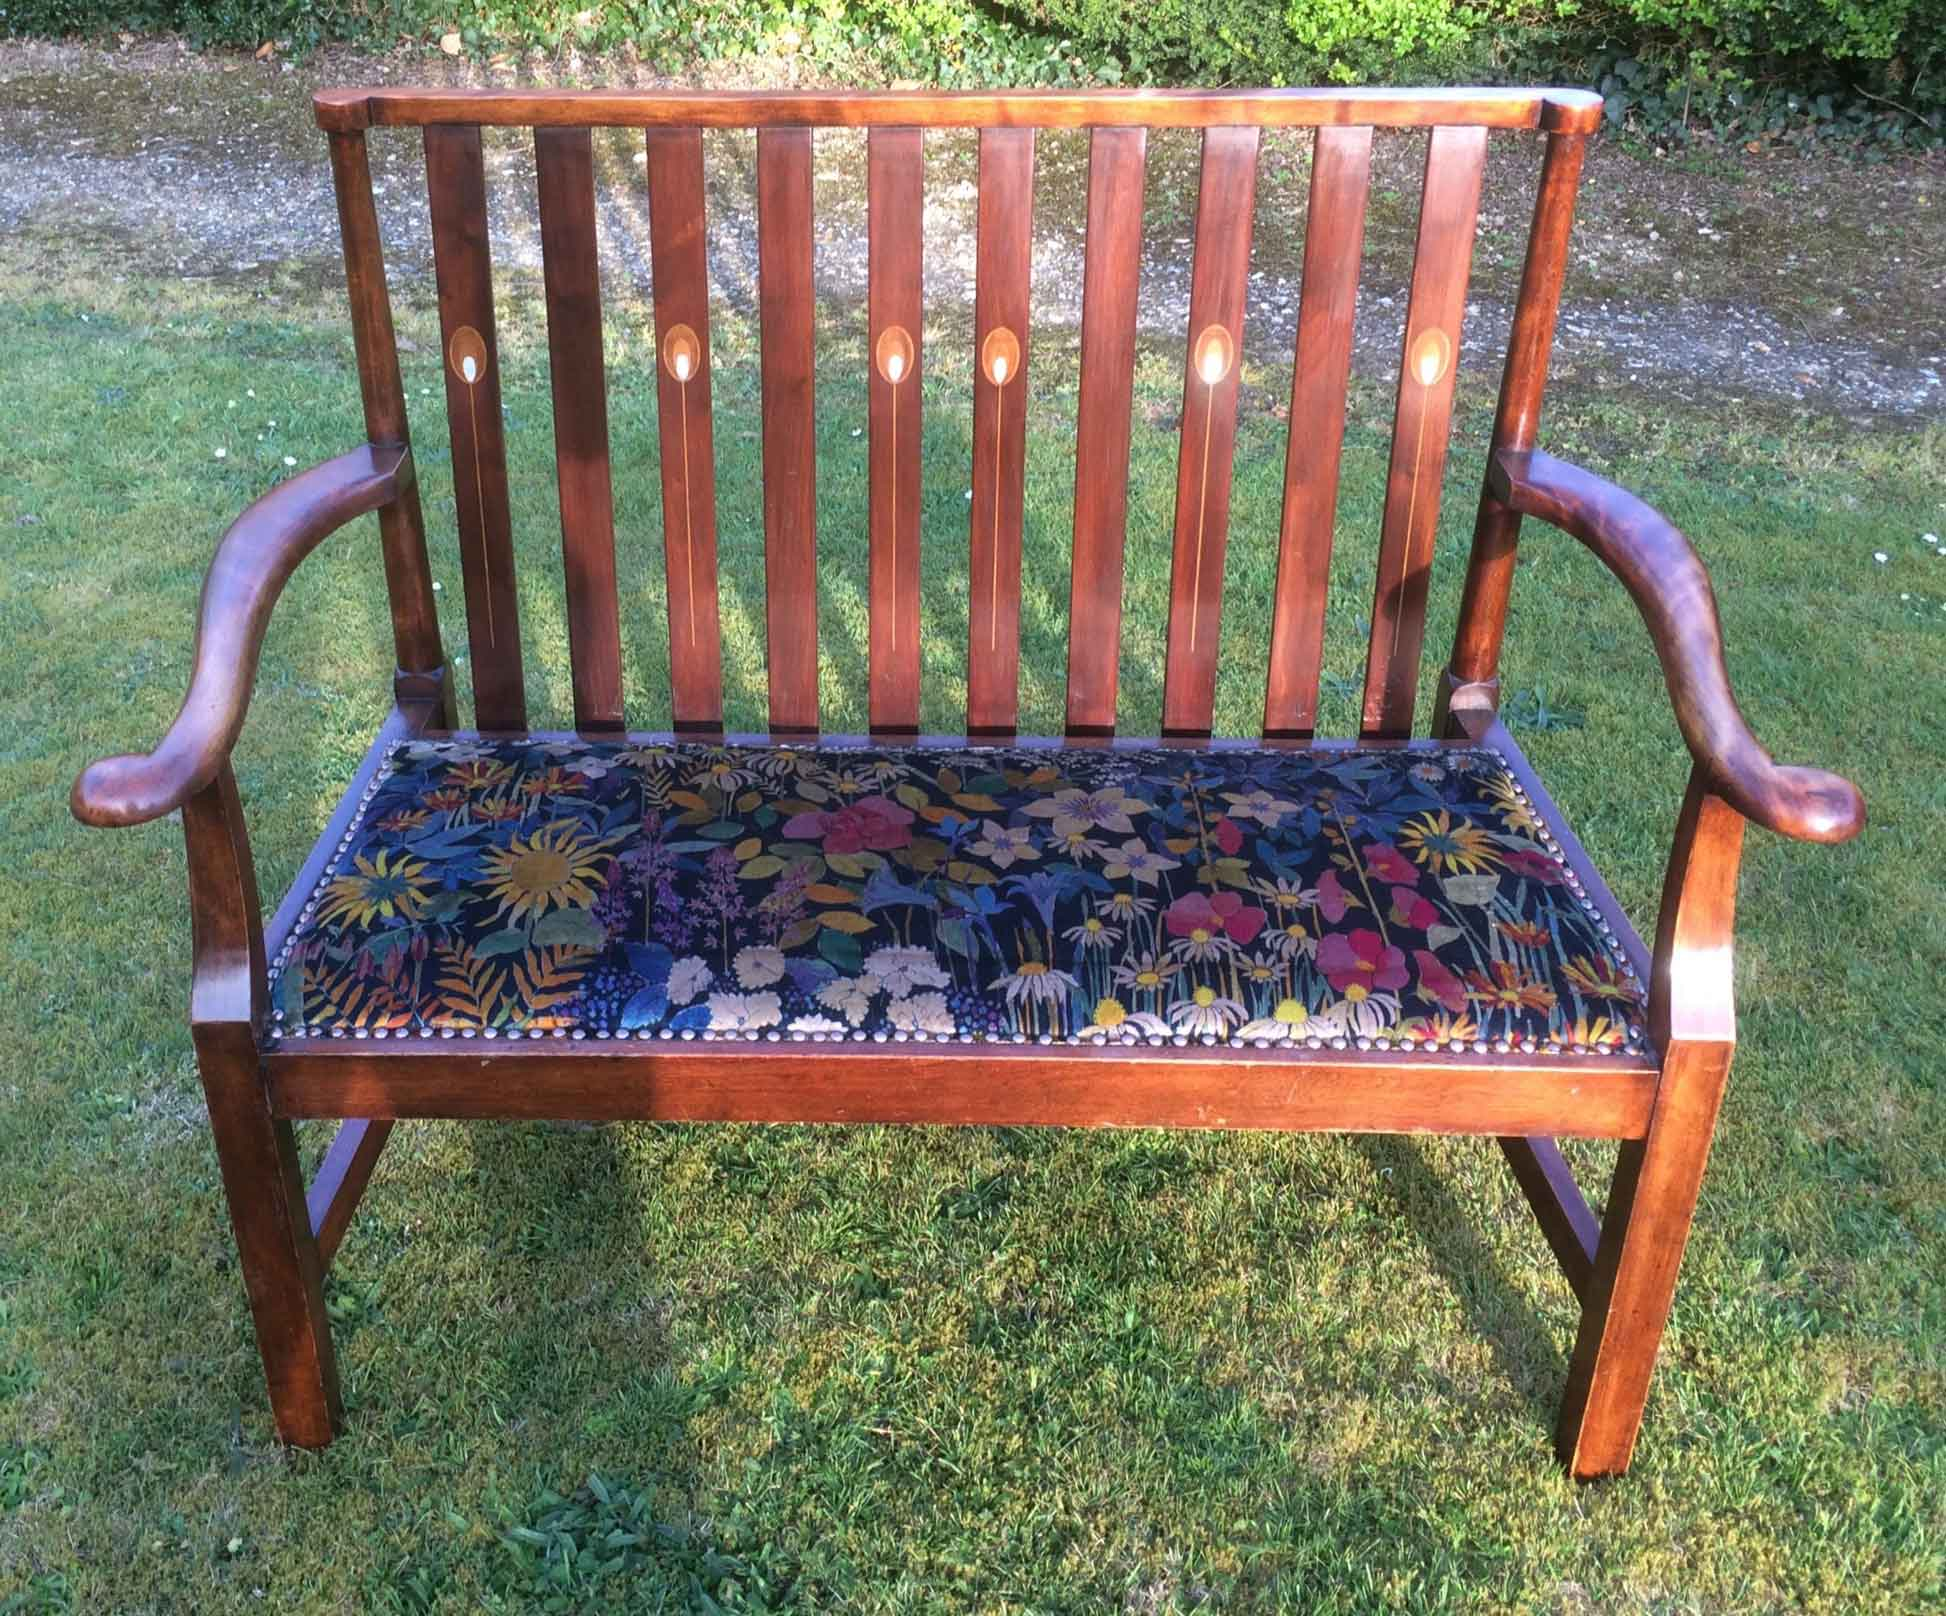 Edwardian arts and crafts settee upholstered in faria flower velvet by liberty